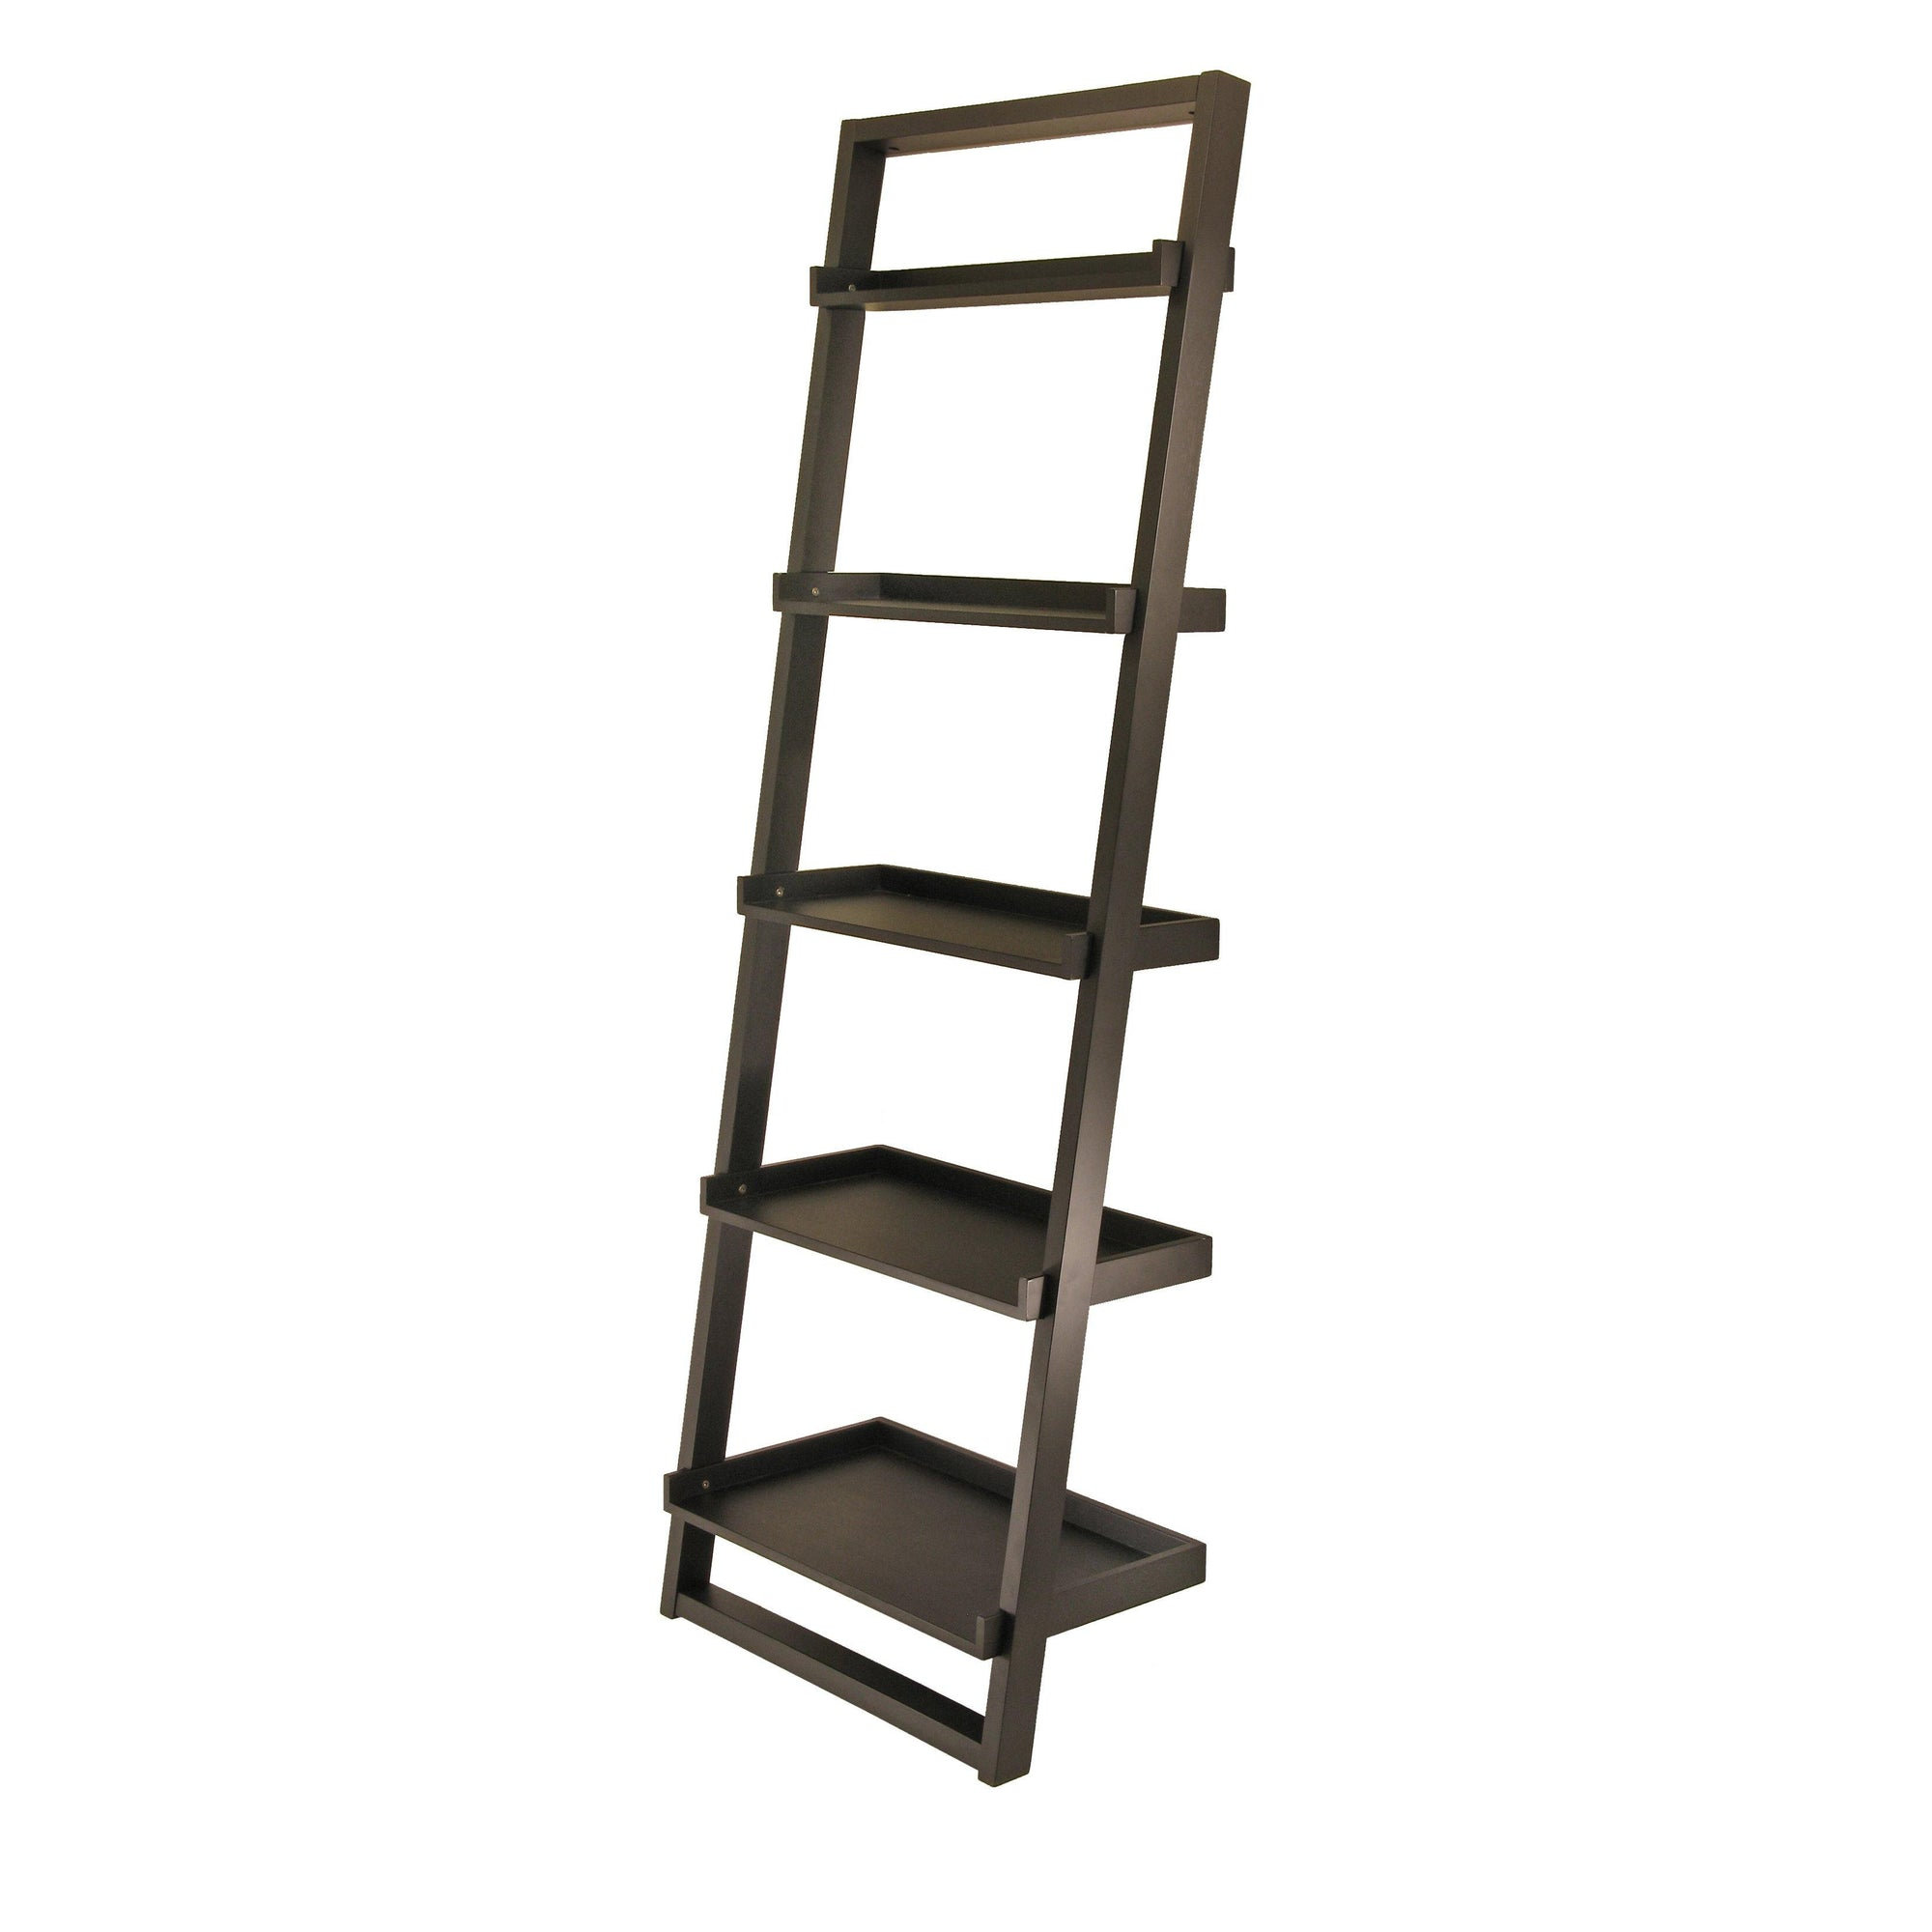 Bailey Leaning Shelf 5-Tier - My USA Furniture